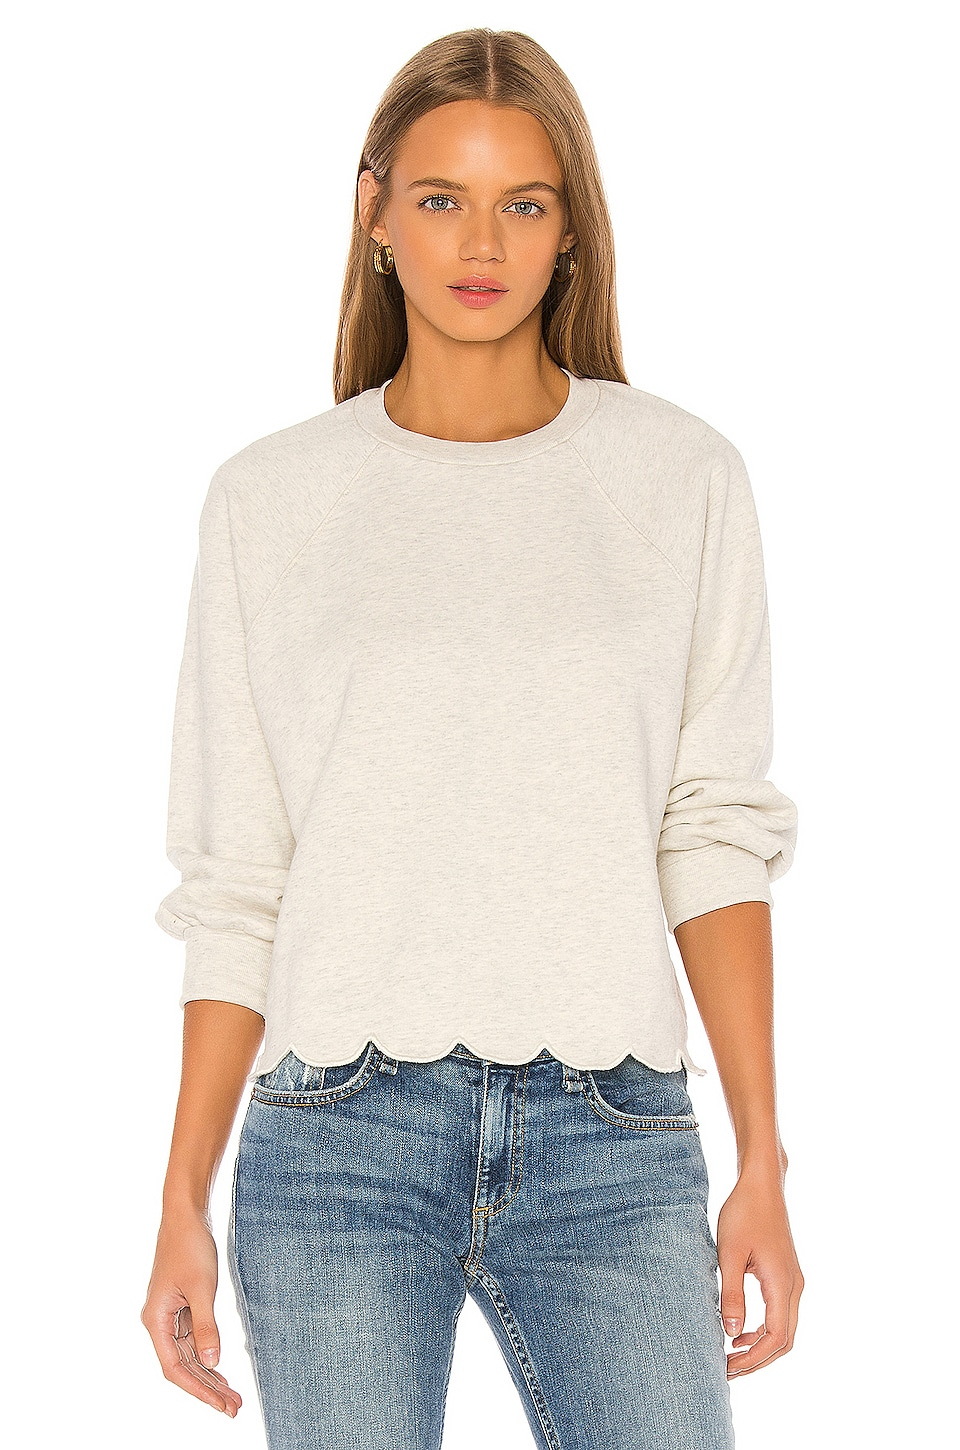 FRAME Scallop Crew Sweatshirt in Oatmeal Heather